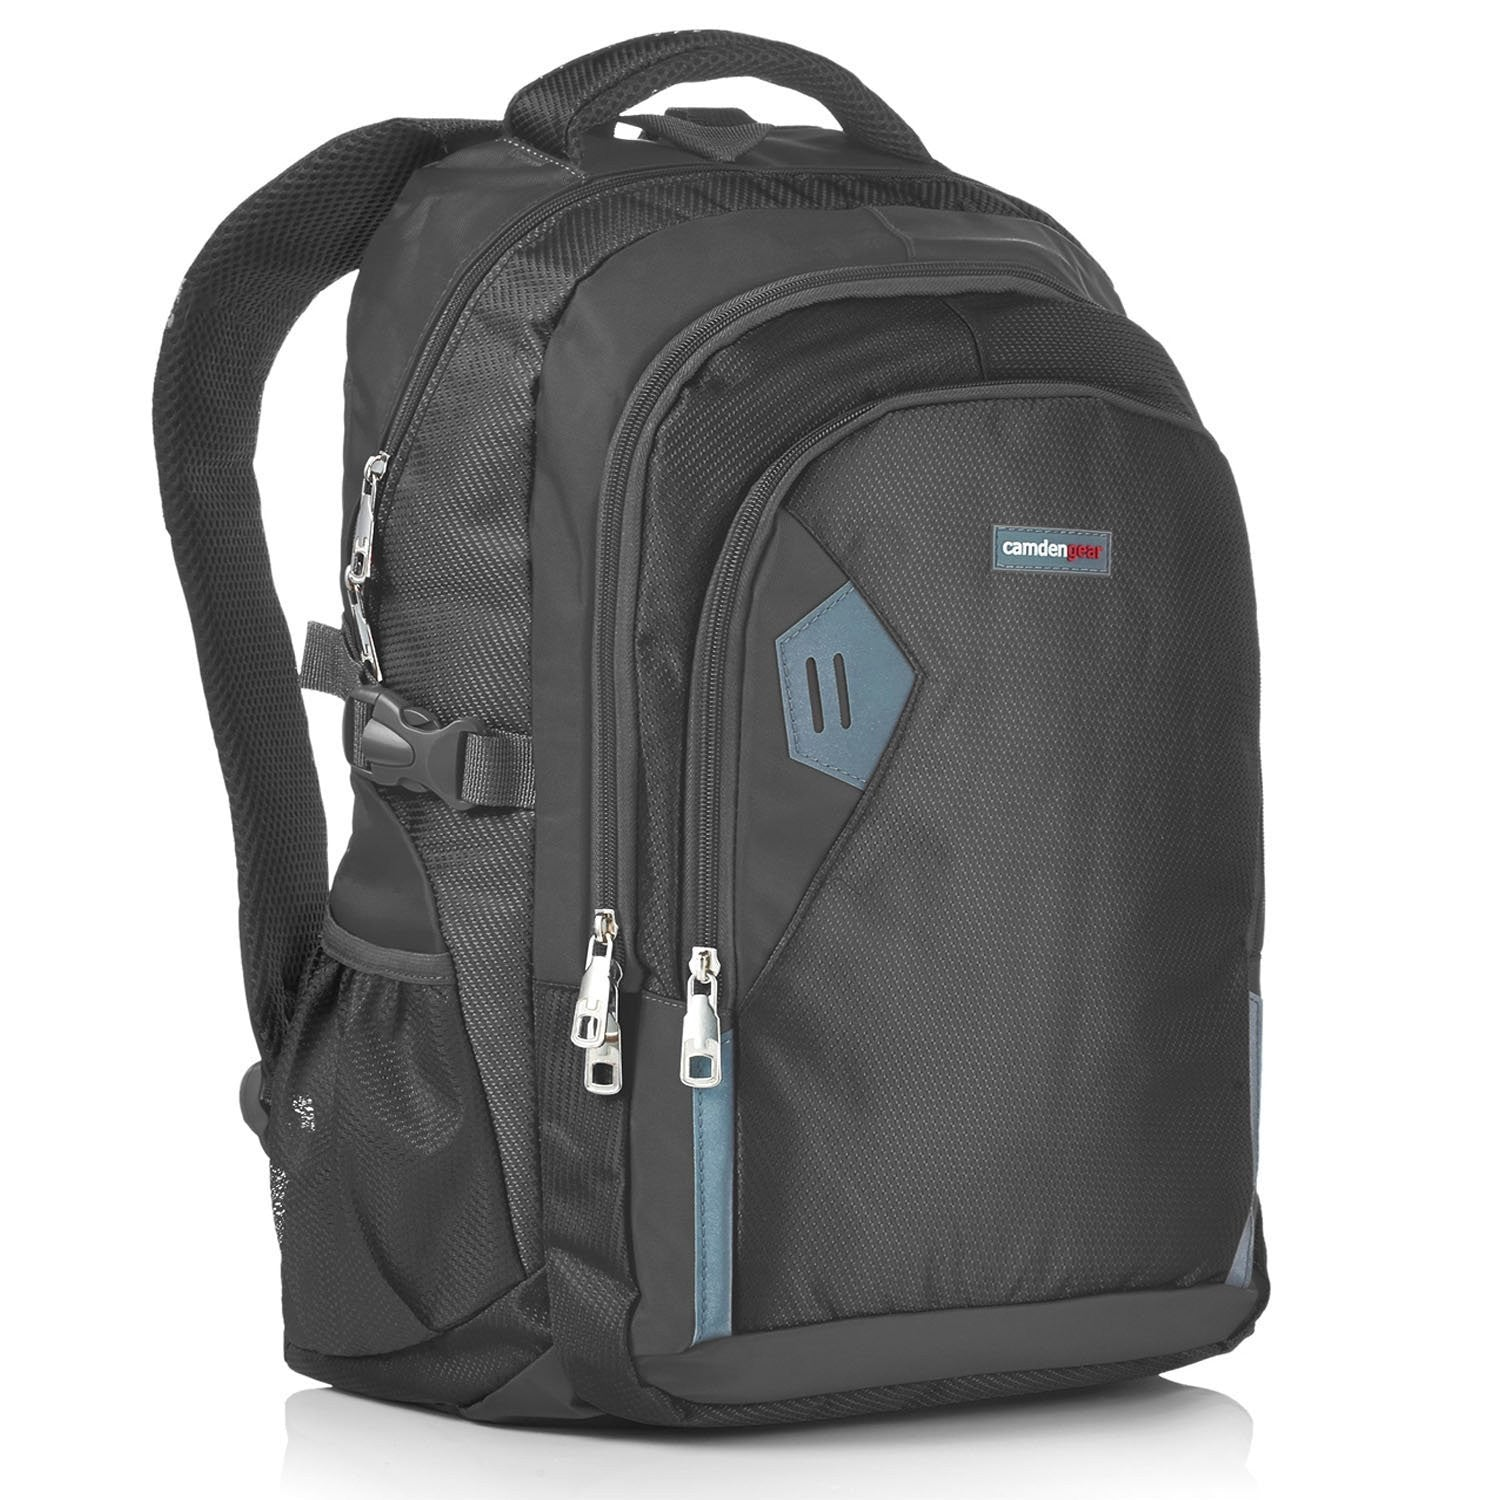 Camden Gear Outdoor Backpack